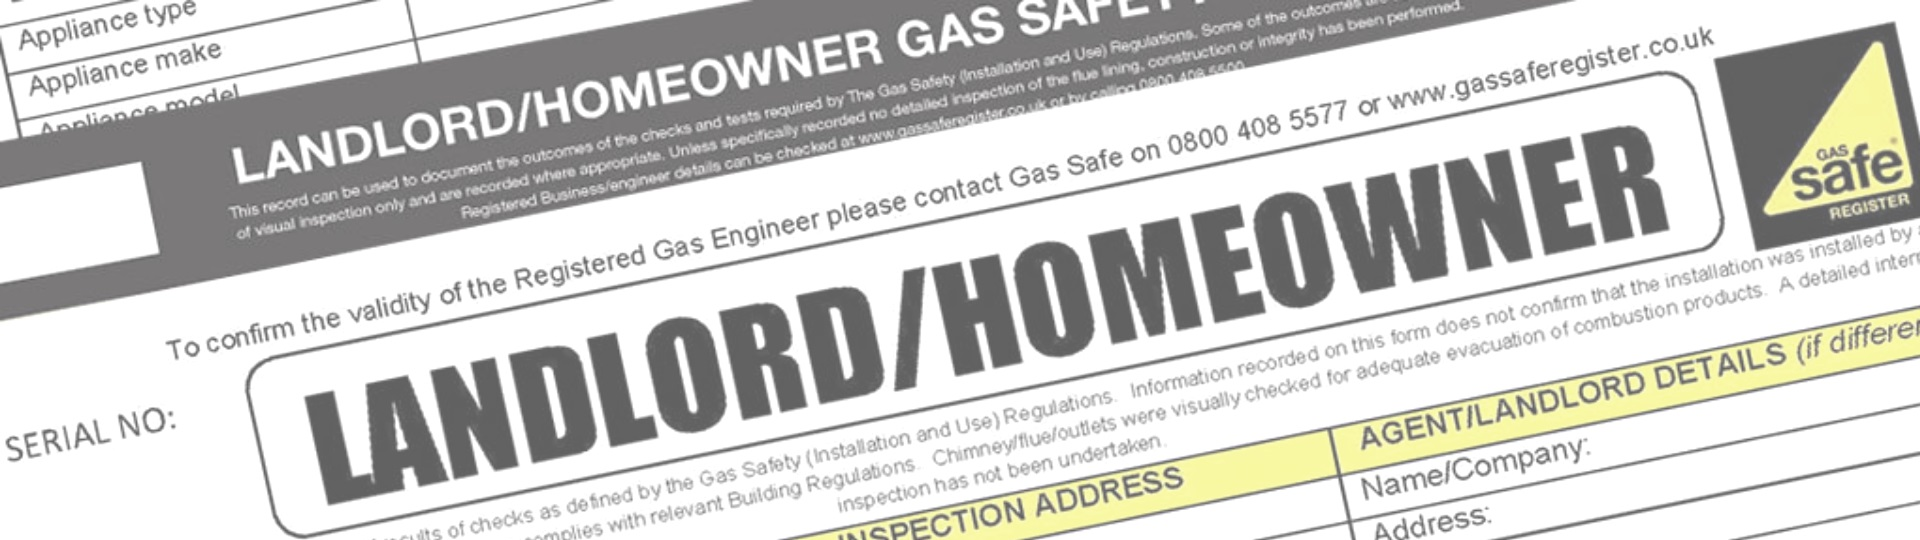 Gas Saftey Certificates Withywood